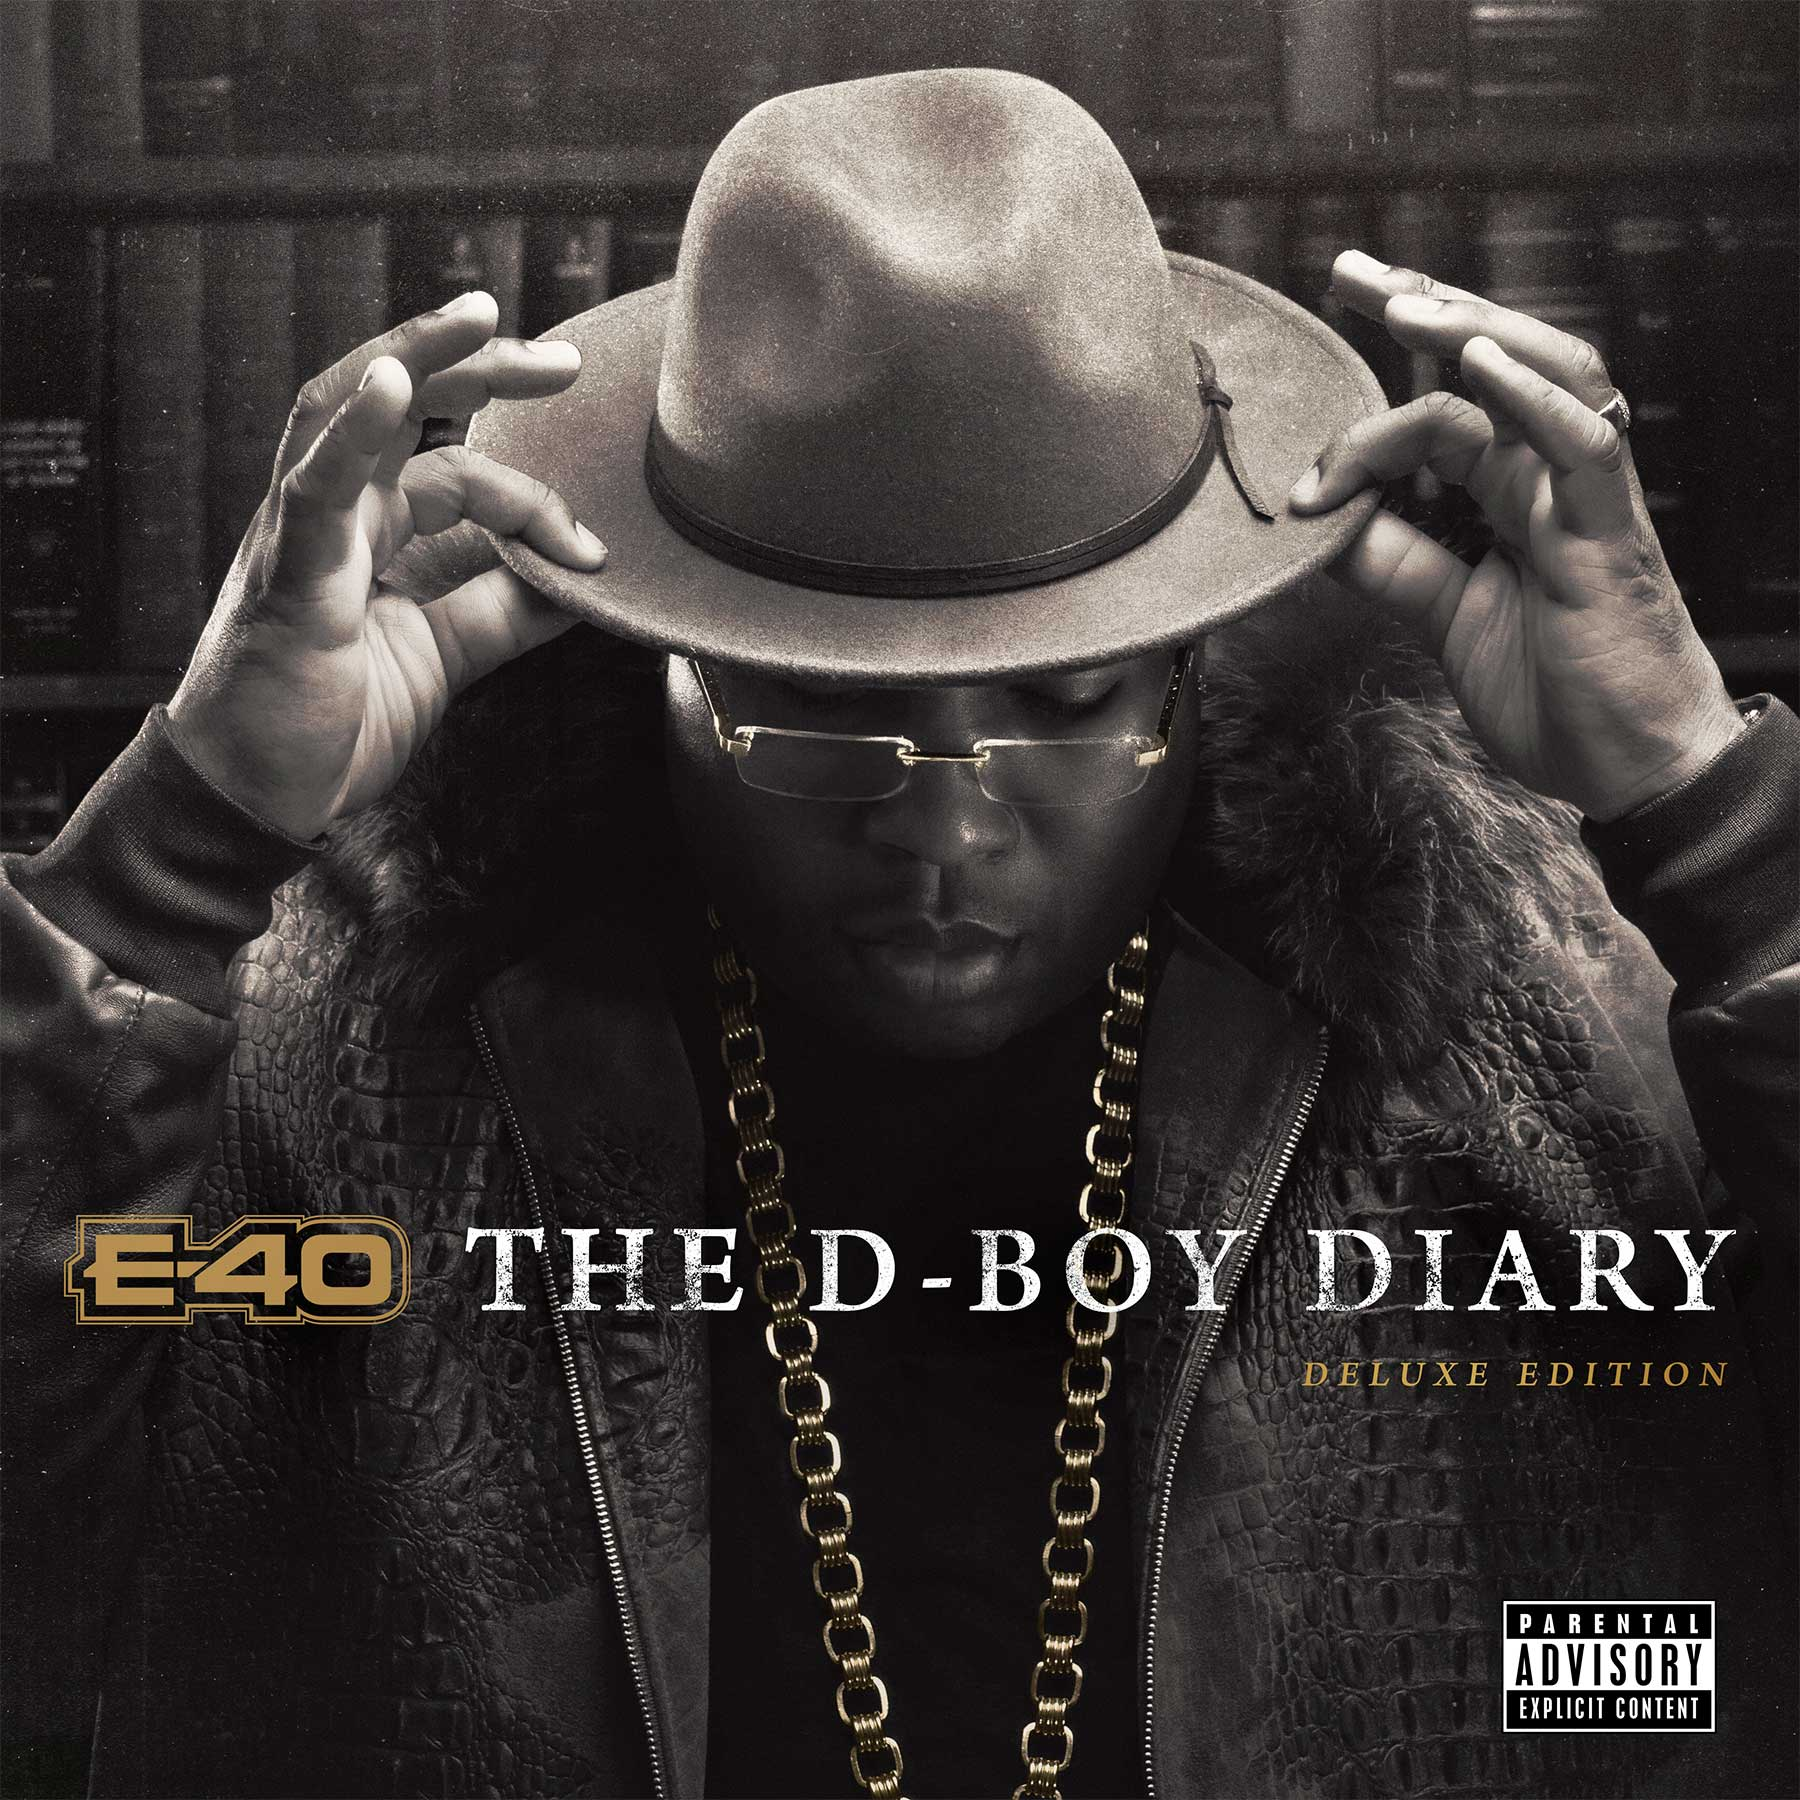 E-40_The-D-Boy-Diary-Deluxe-Edition_00852020002980